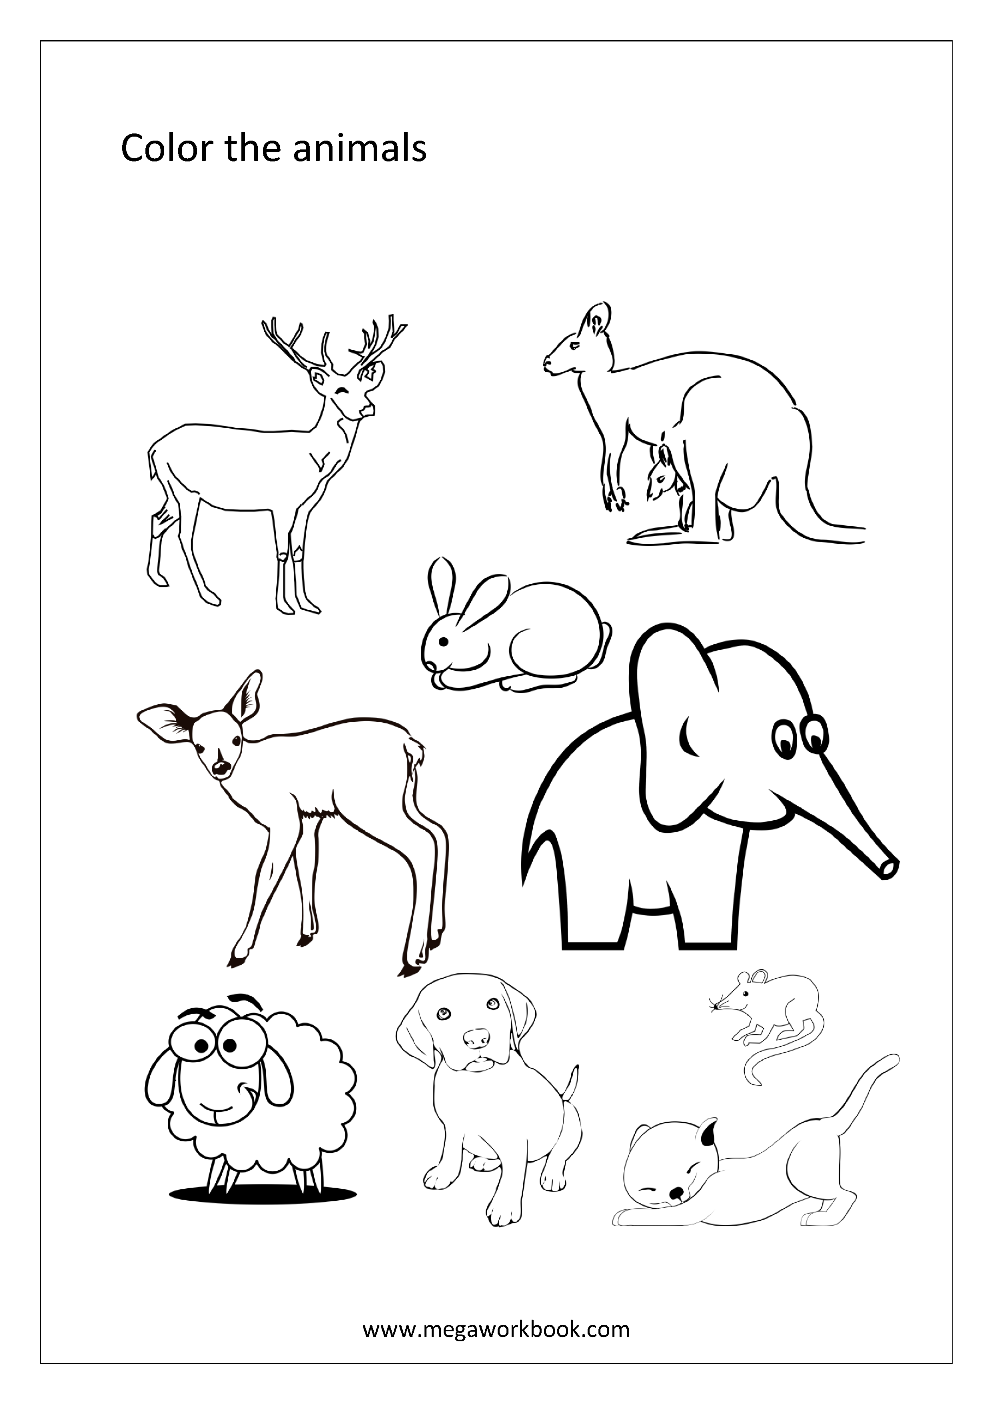 Free Coloring Sheets Animals Water Creaturs Insects and Birds